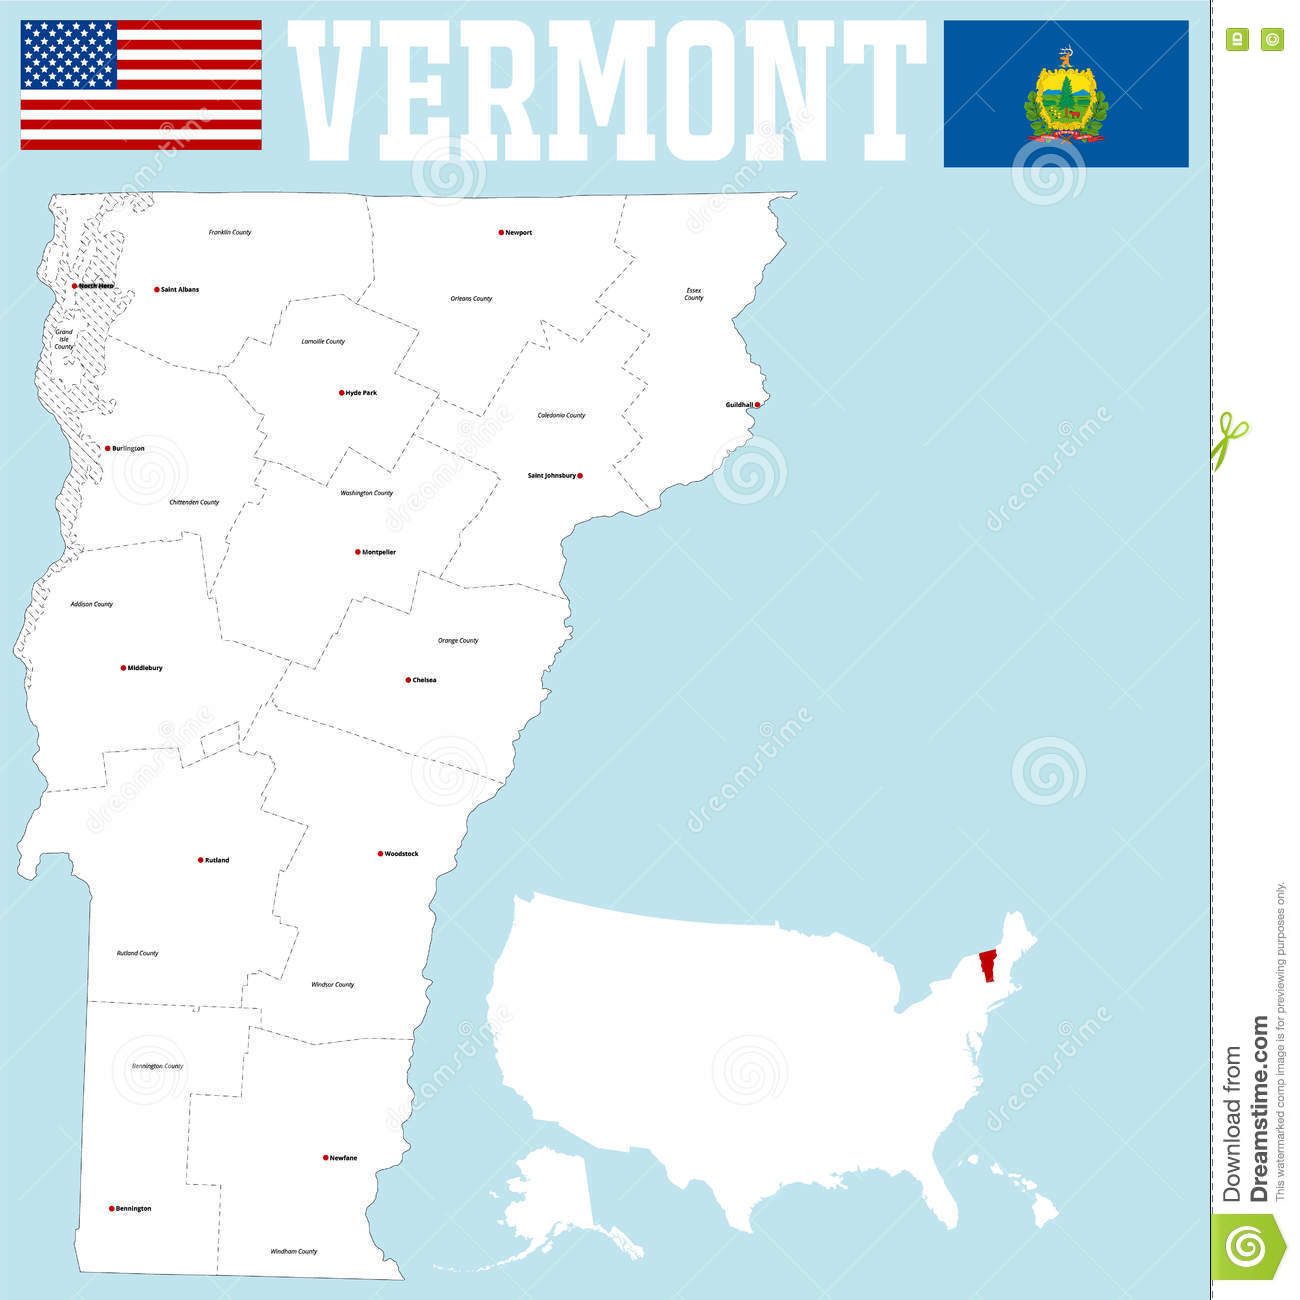 Vermont county map stock vector. Illustration of islands ...